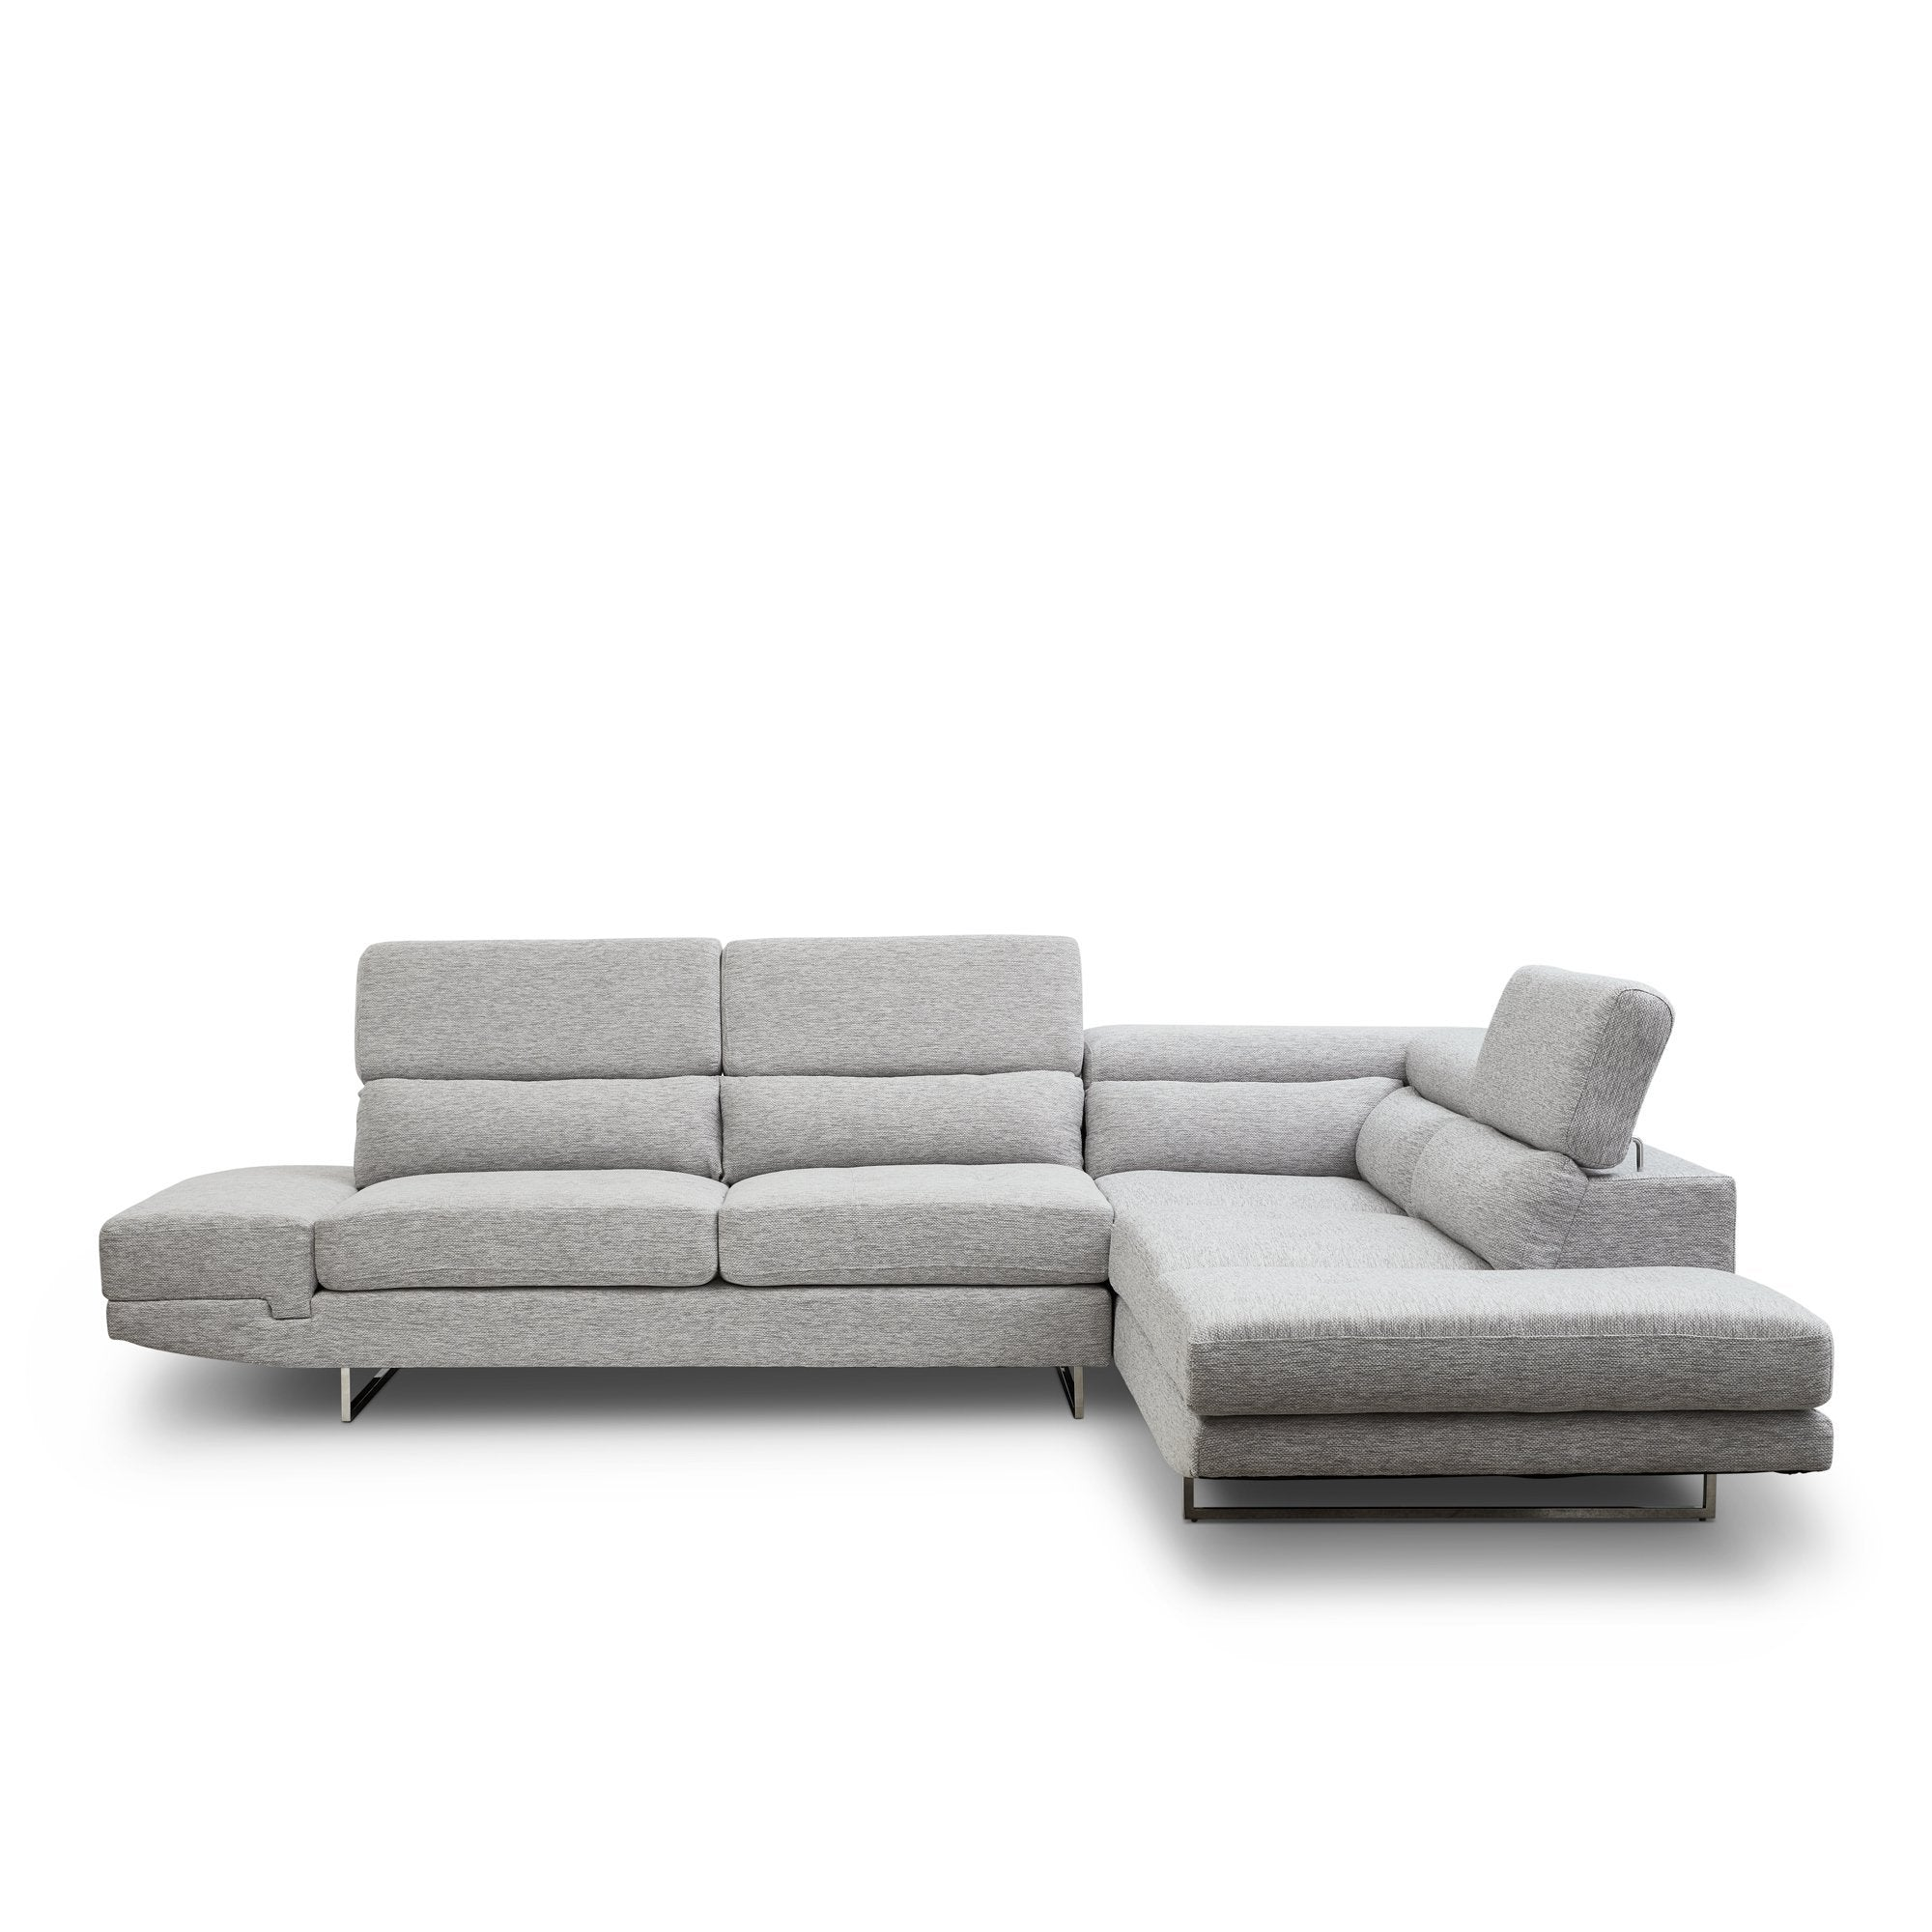 Floyd Right Chaise Lounge